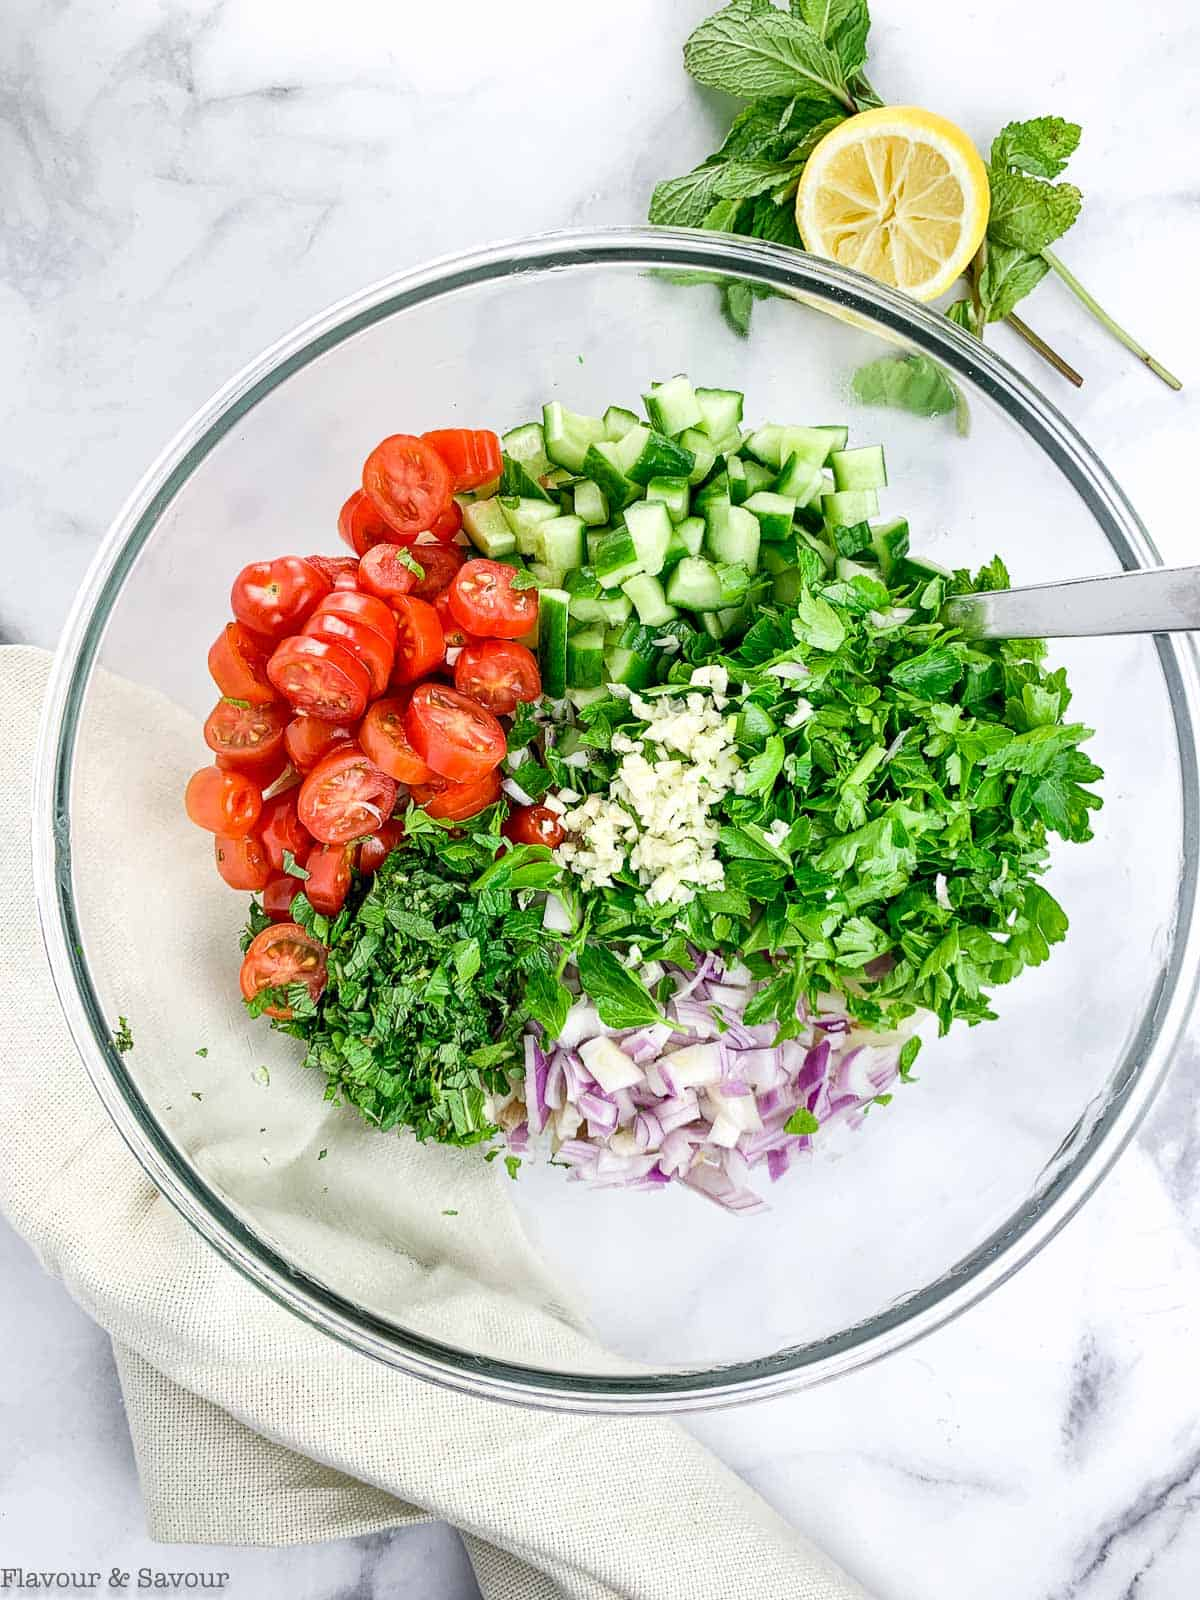 Ingredients for Tabouli Pasta Salad